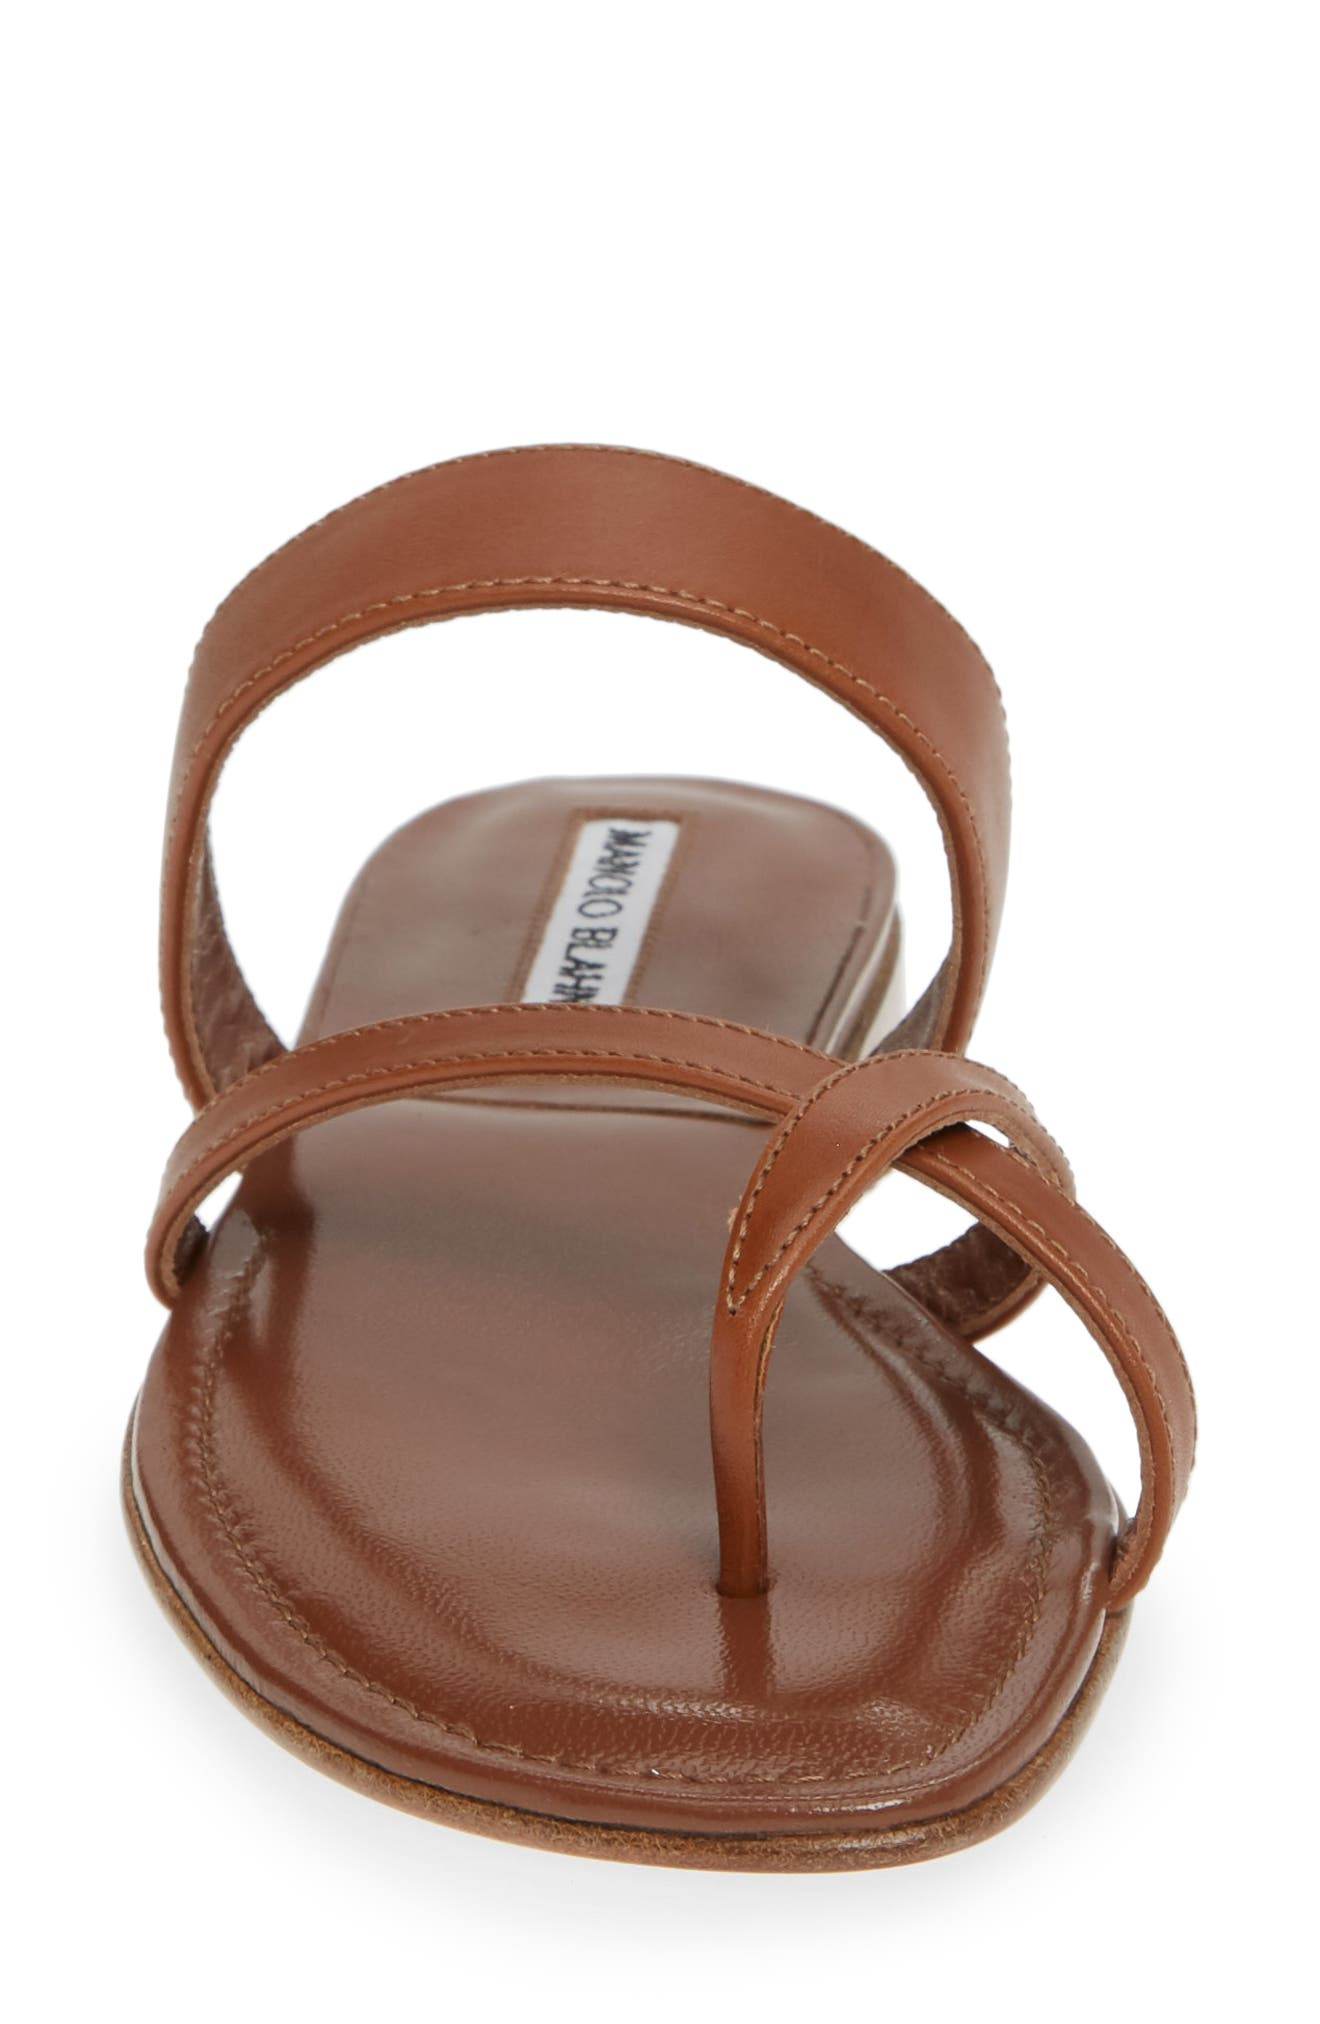 Slide Sandal,                             Alternate thumbnail 4, color,                             LUGGAGE BROWN